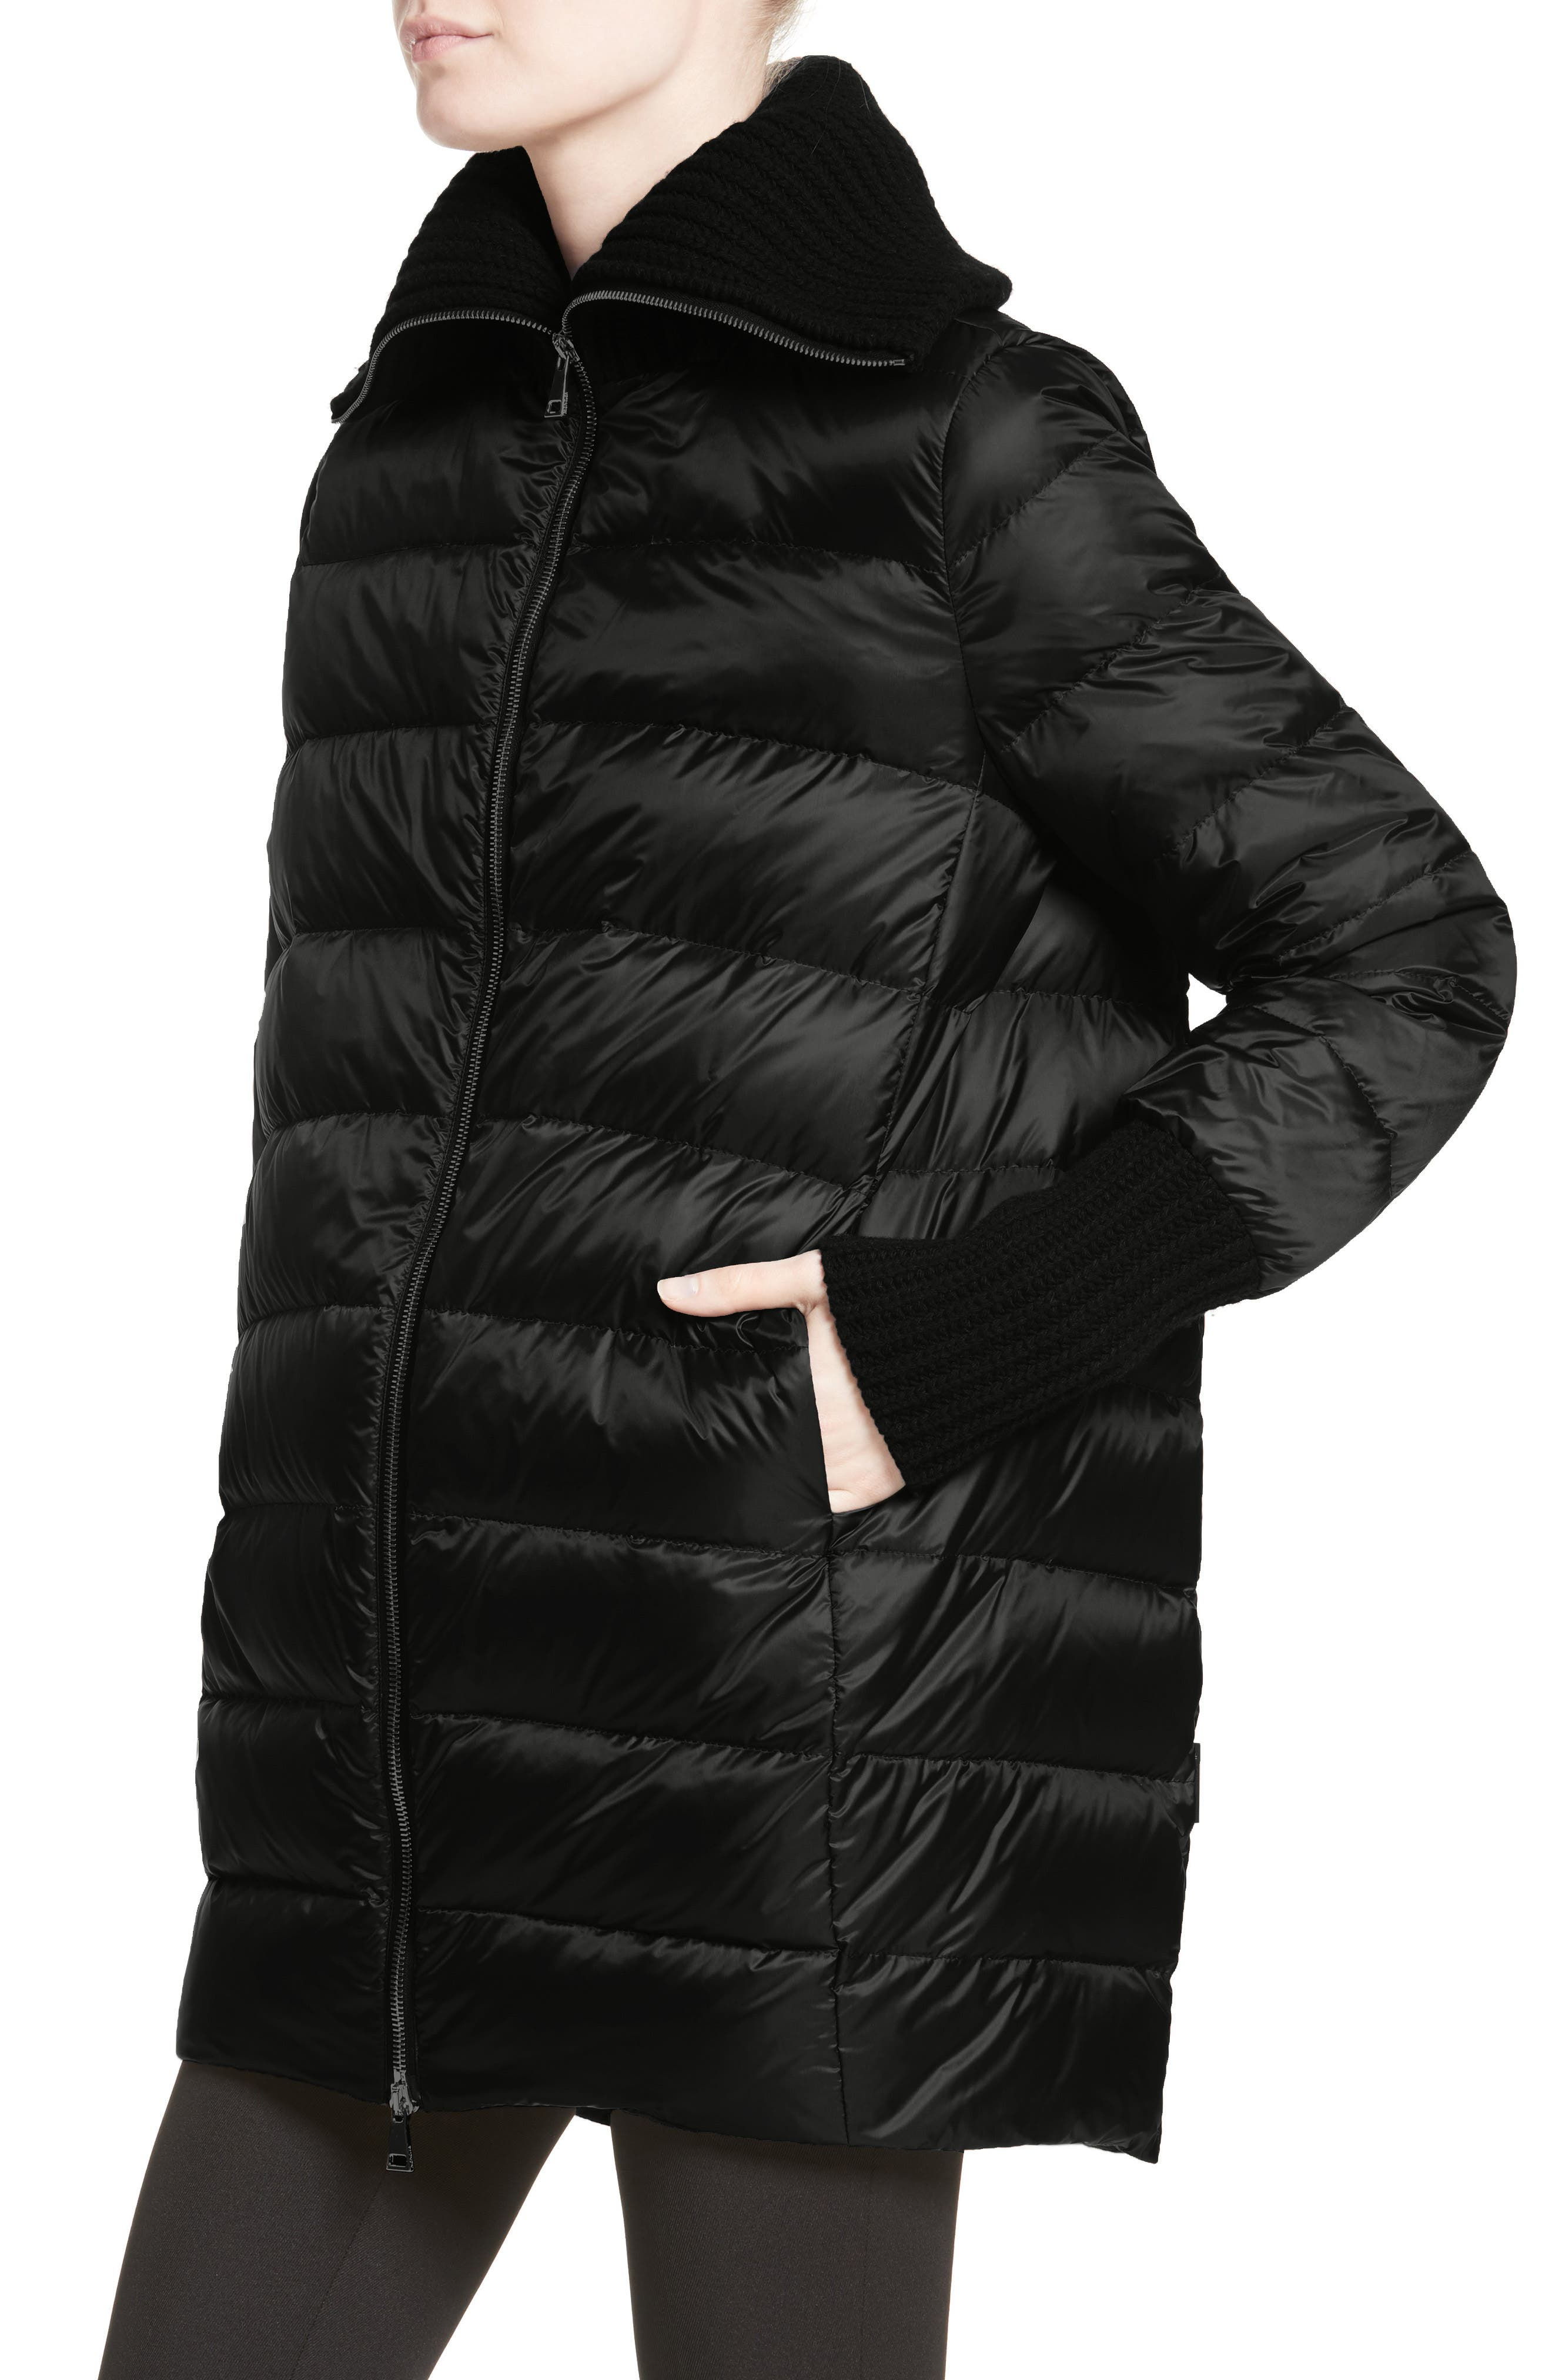 Acanthus Wool & Cashmere Coat with Removable Down Puffer Layer,                             Alternate thumbnail 4, color,                             BLACK